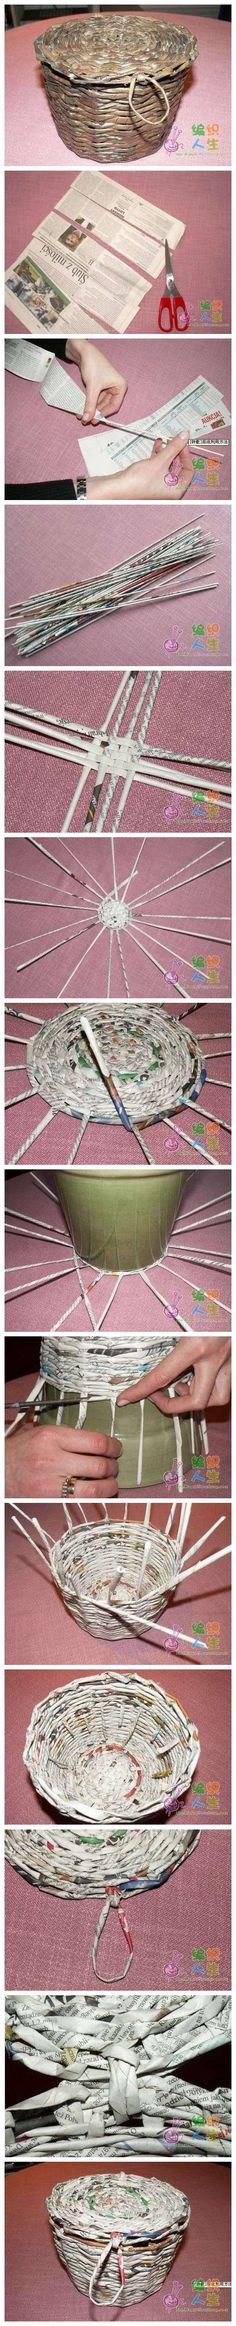 weaving a basket with newspaper!